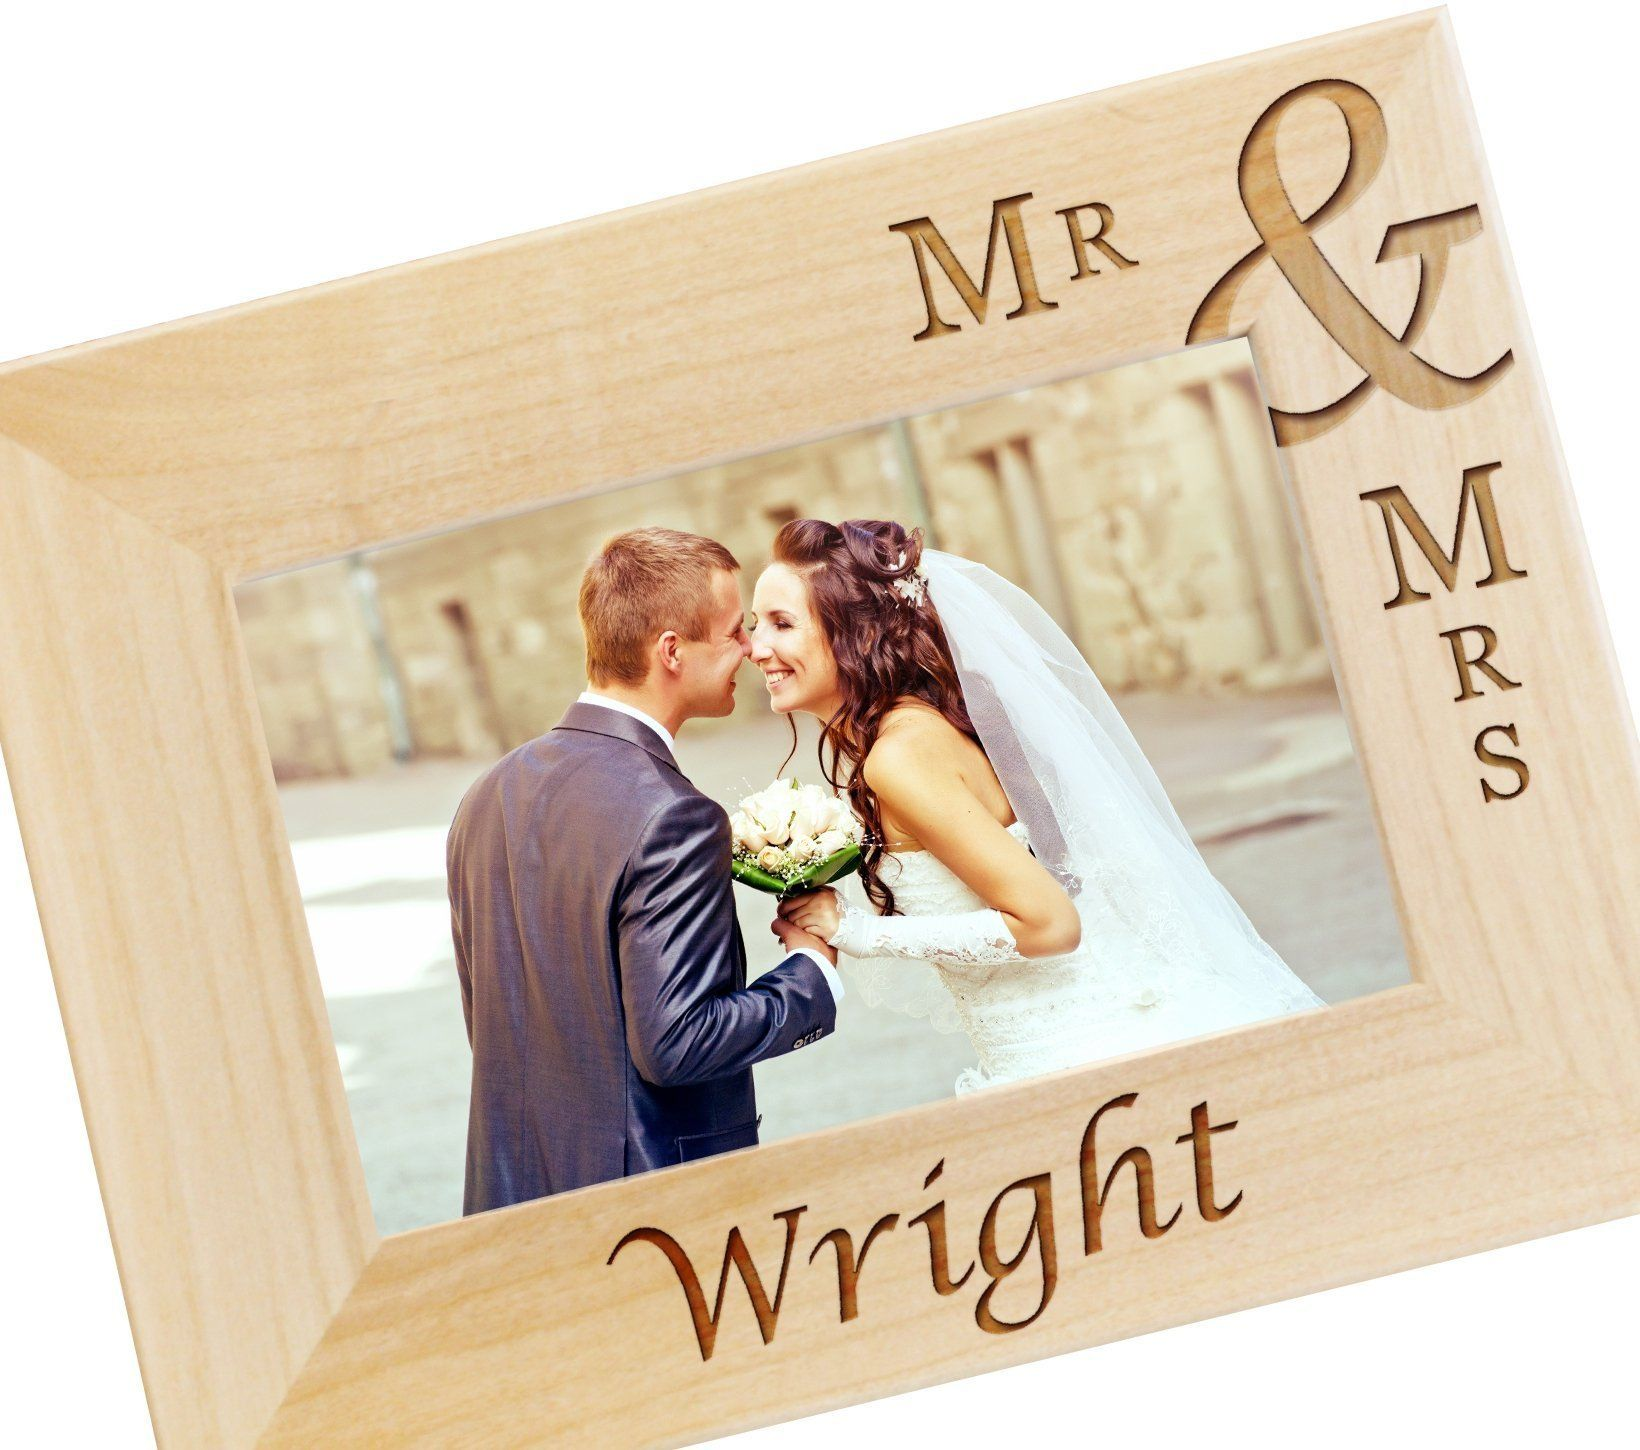 Personalized mr and mrs picture frame engraved wood photo frames ships fast personalized wedding frame custom mr and mrs picture frame engraved photo frames for newlyweds wedding gift for couple jeuxipadfo Choice Image